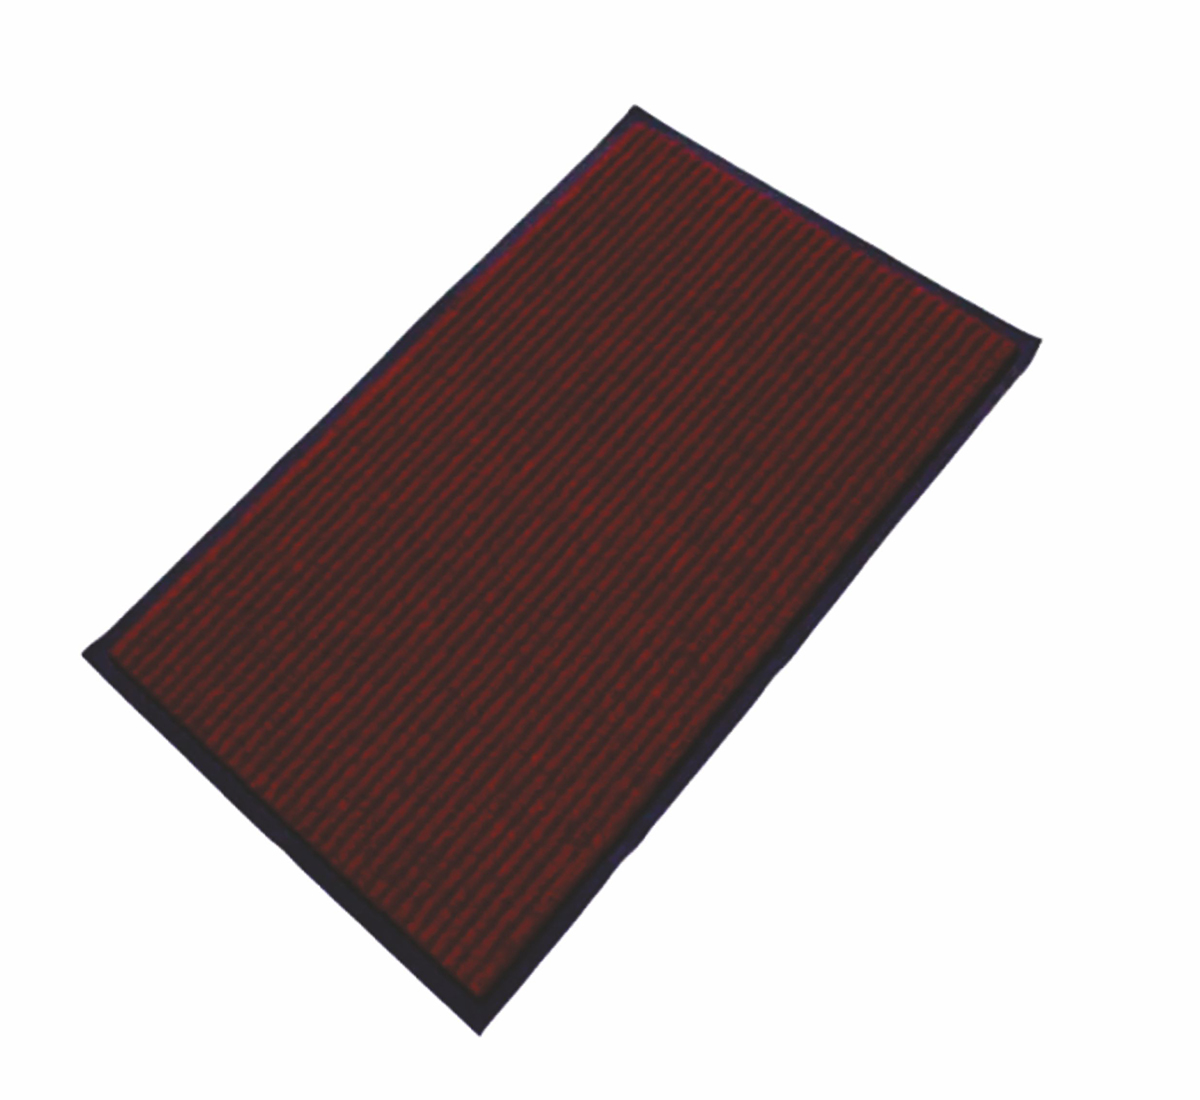 Carpet mat for remove moisture & water from shoe ( Gray )